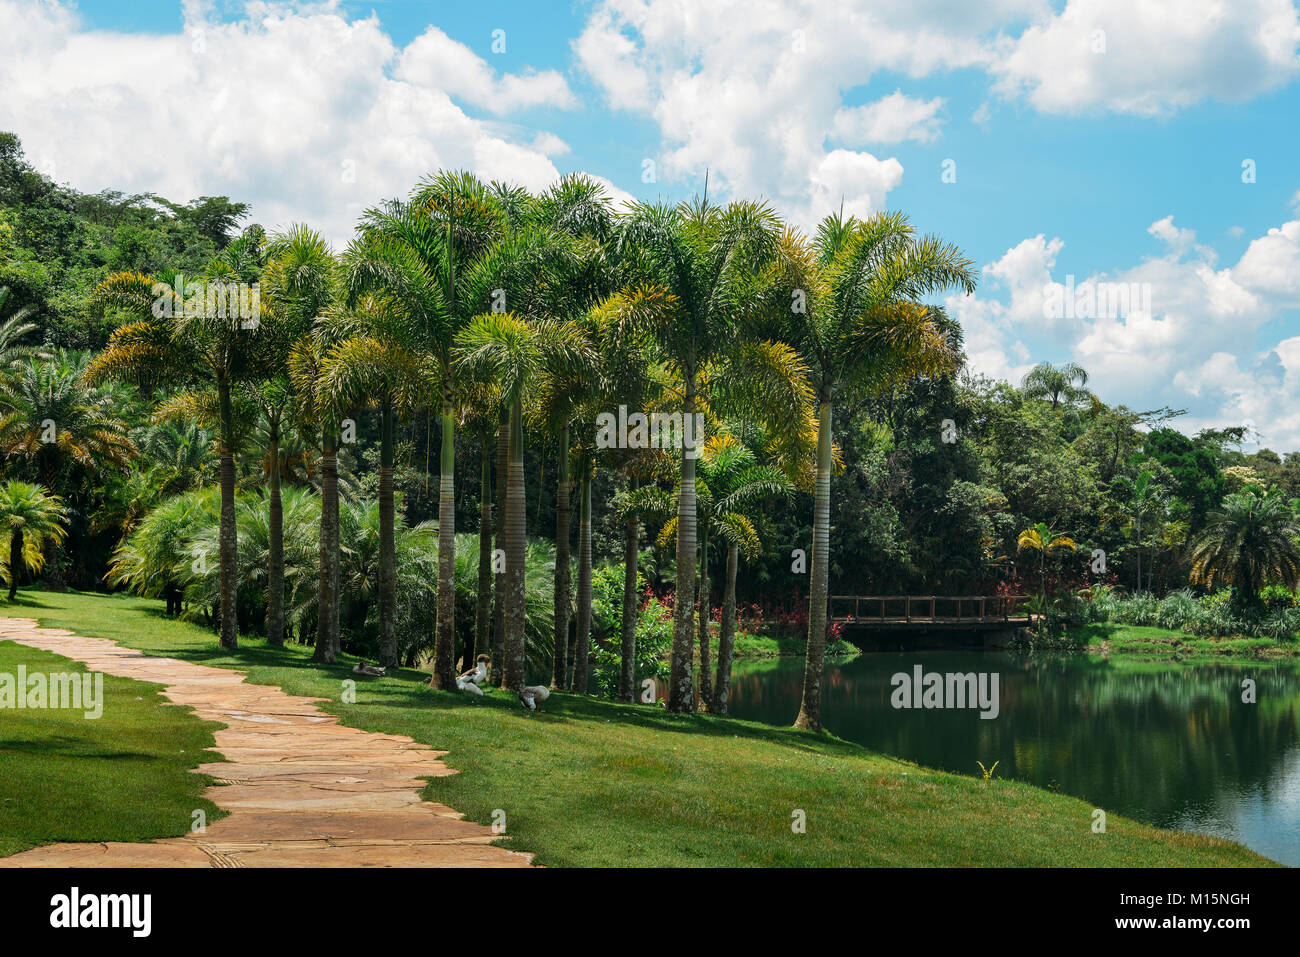 Palm trees next to a lake at a park in Brazil - Stock Image